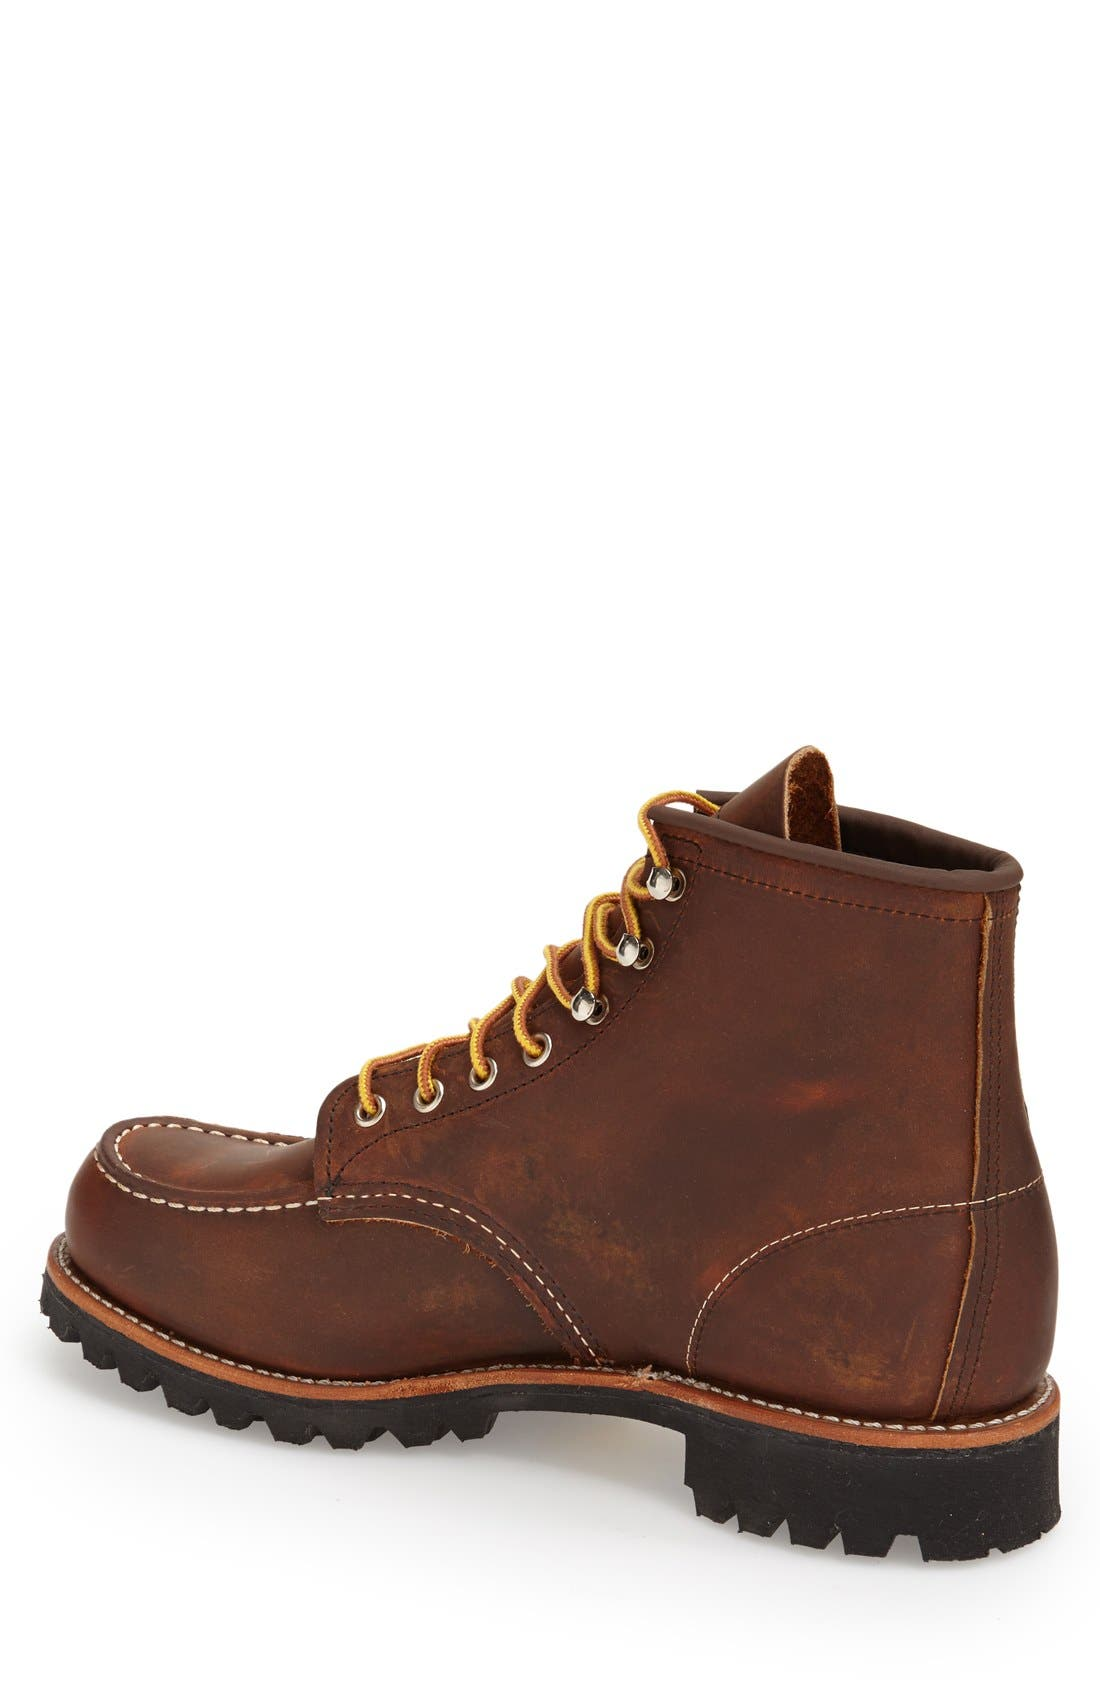 'Roughneck' Boot,                             Alternate thumbnail 4, color,                             COPPER ROUGH AND TOUGH LEATHER